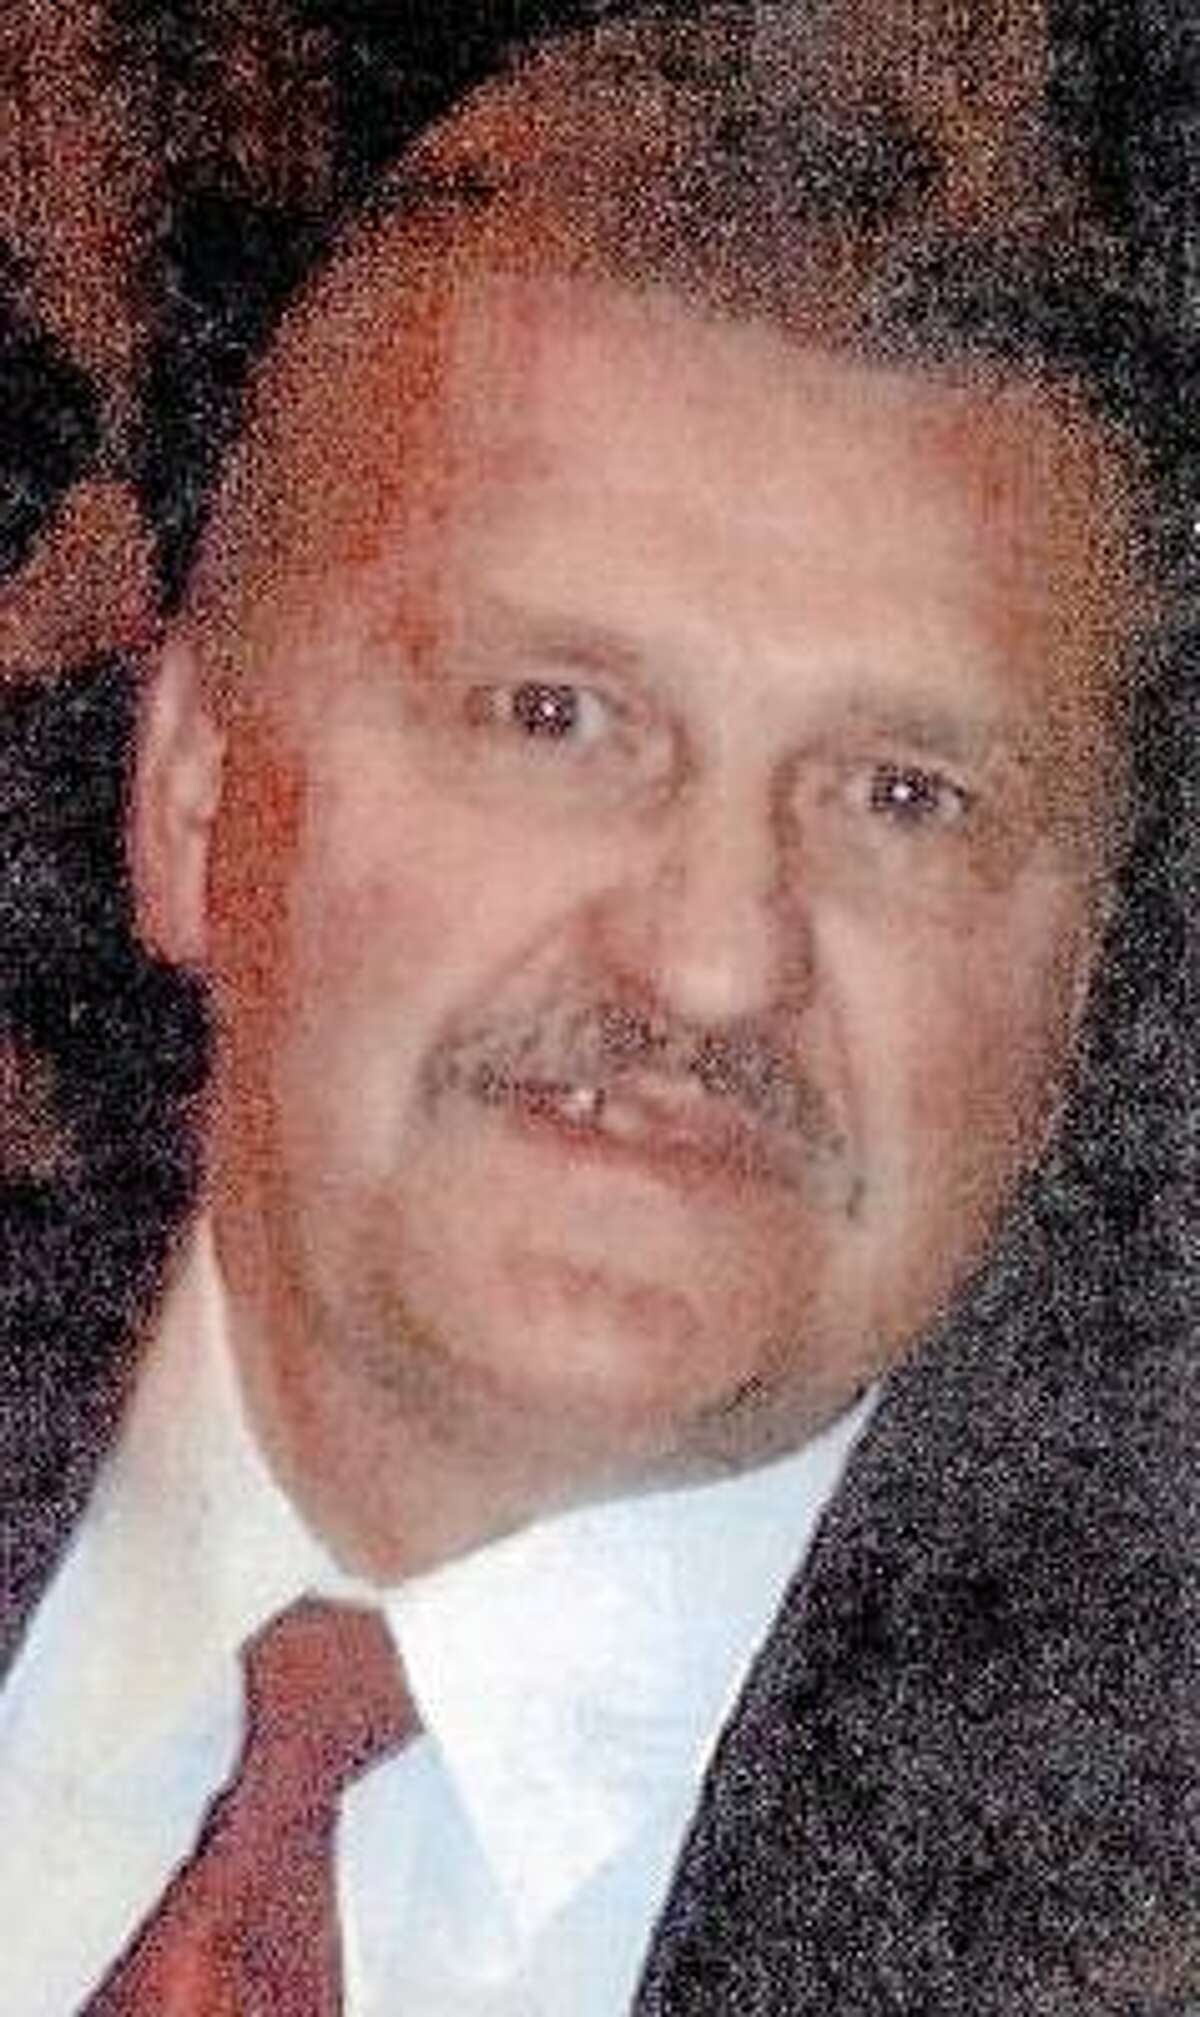 Submitted photo: Zbigniew Piekarski, a 55 year old Rocky Hill man who has been missing since Sunday.